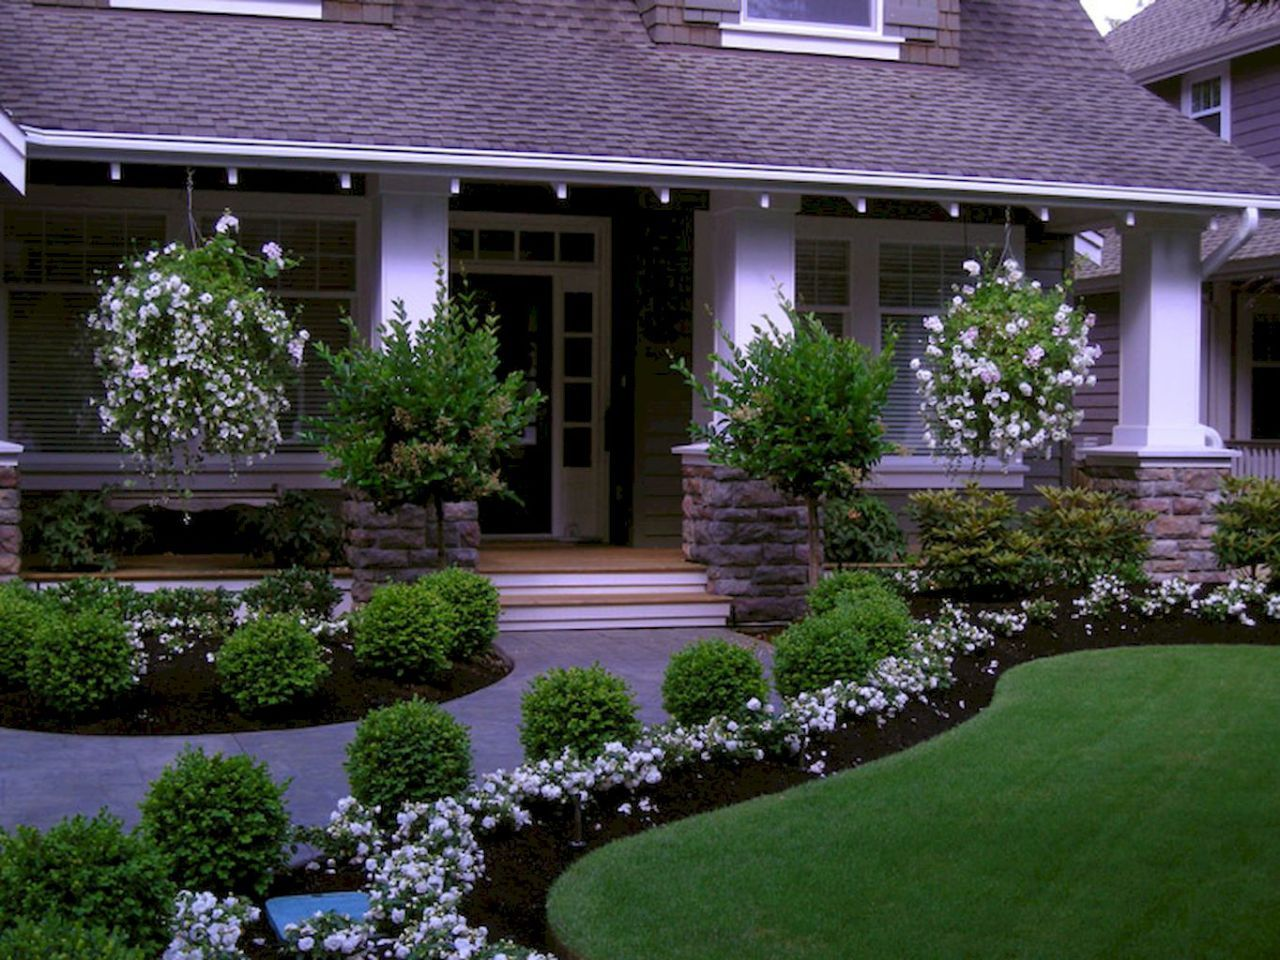 Cheap landscaping ideas for your front yard that will ...